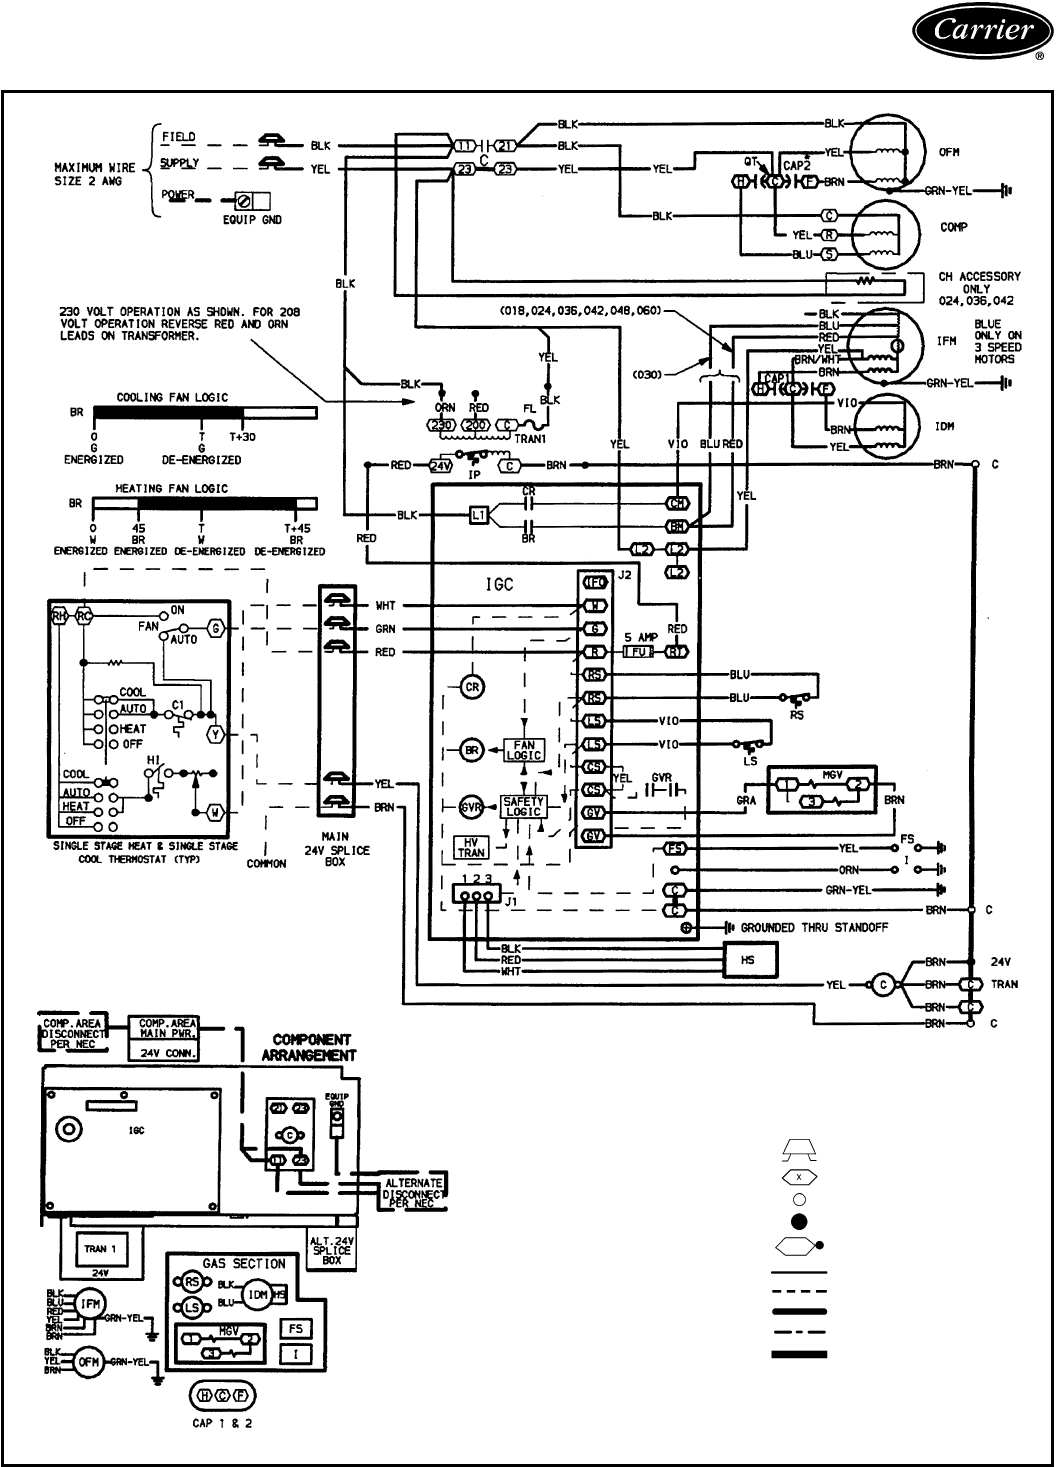 Carrier Furnace: Carrier Furnace Thermostat Manual